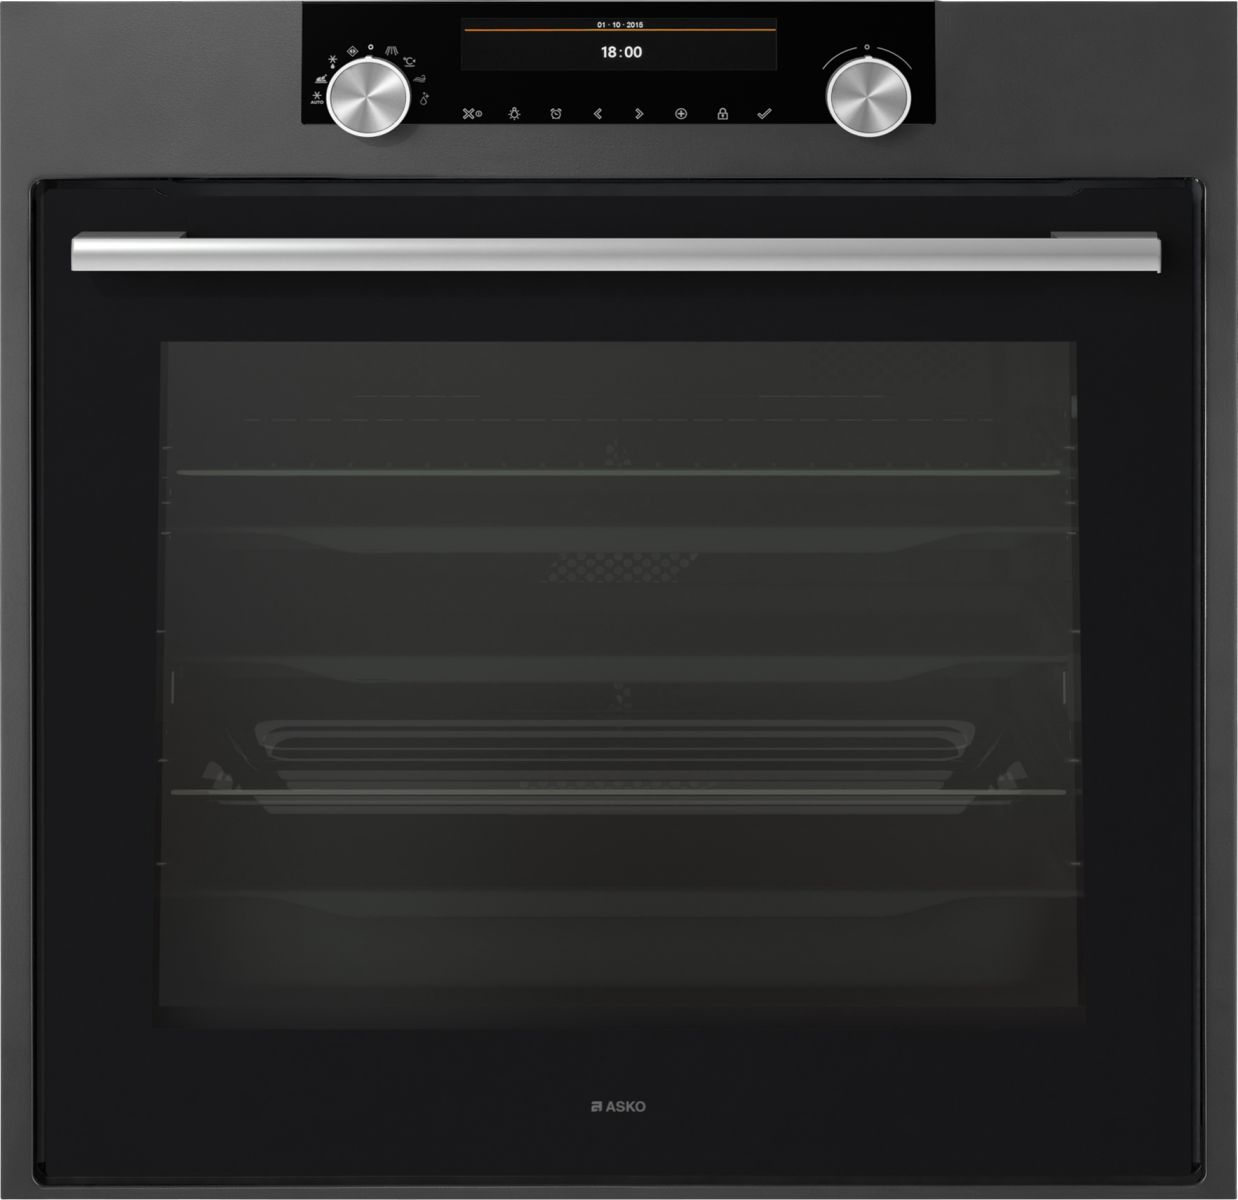 asko built in craft oven stocked in black at any retail asko store rh asko com au Convection Oven Kenmore Oven Manual